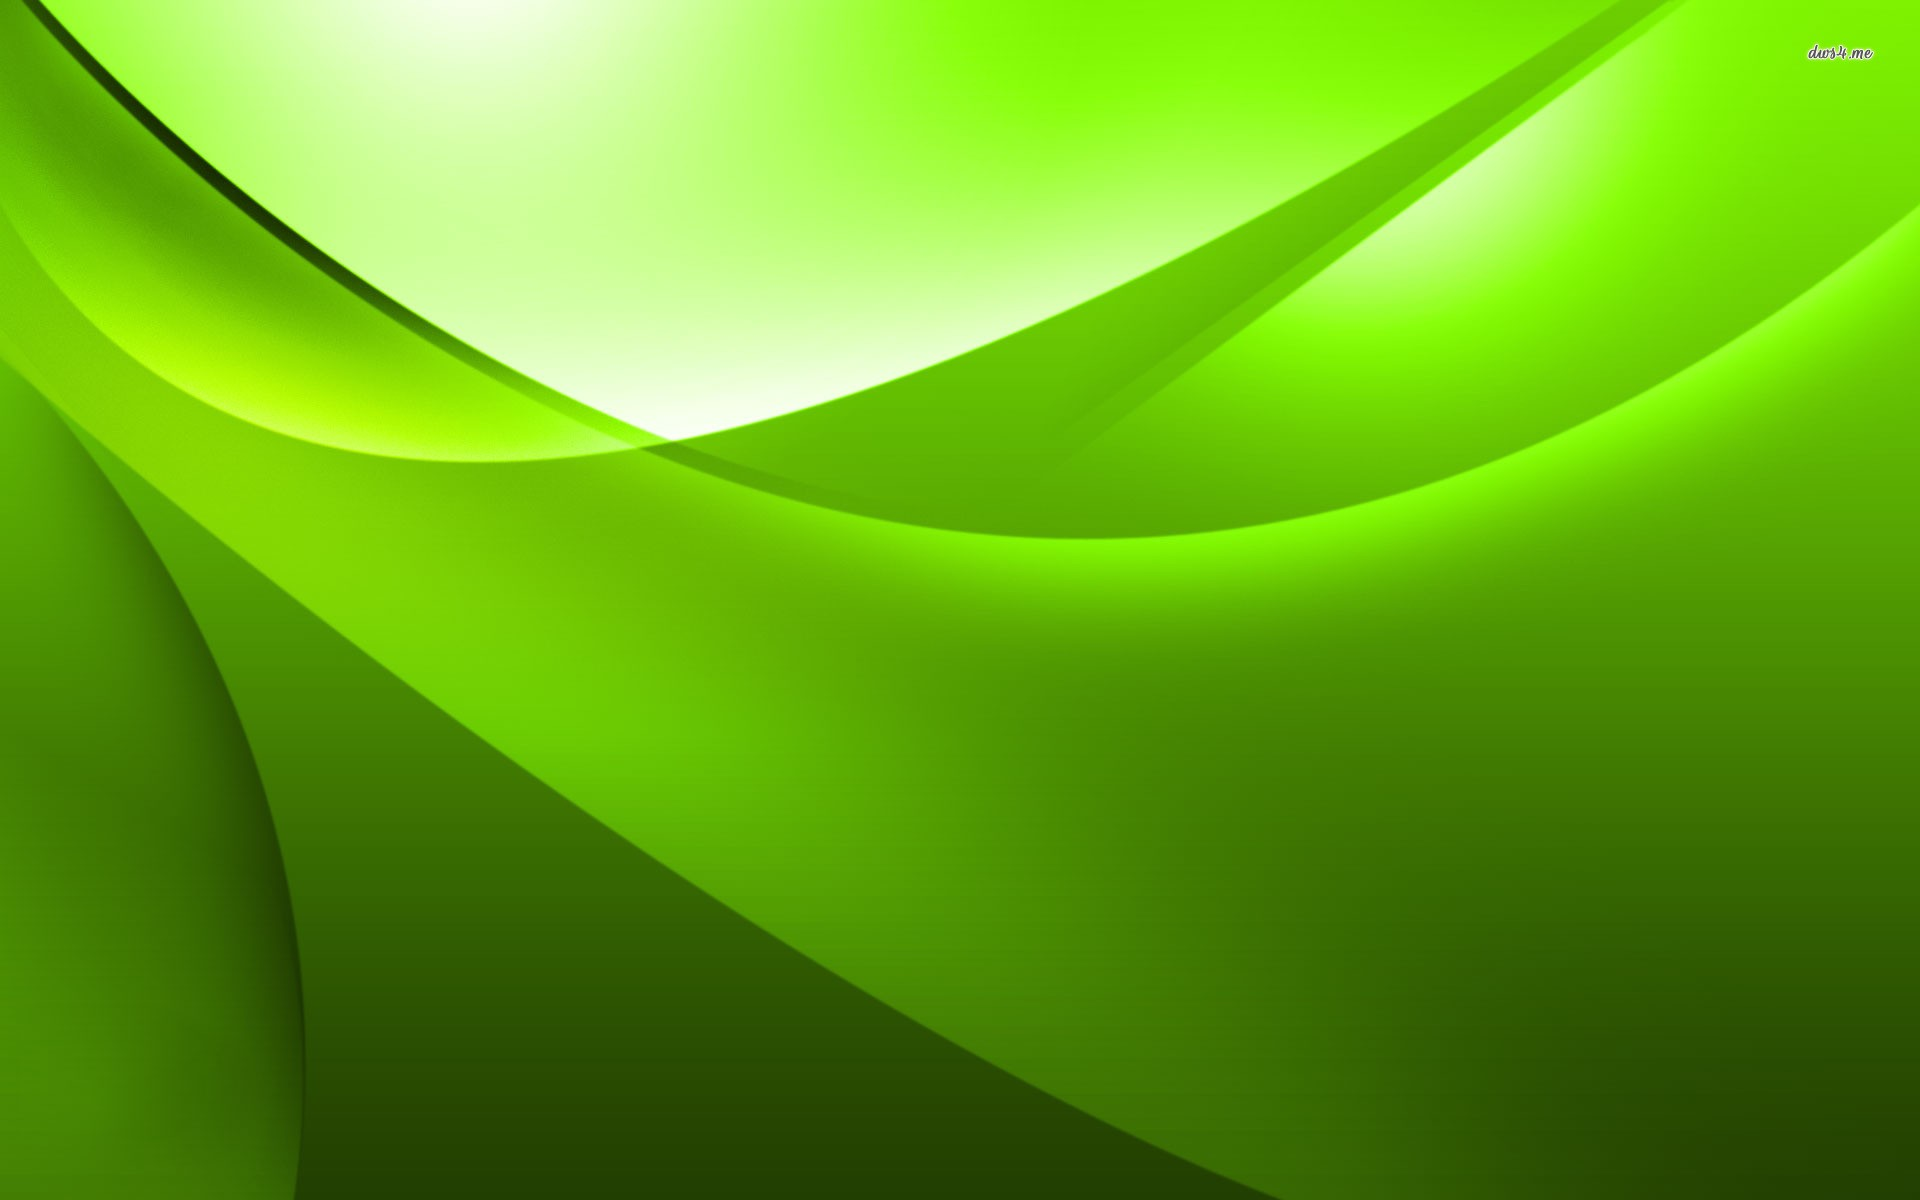 green abstract background ·① download free amazing hd wallpapers